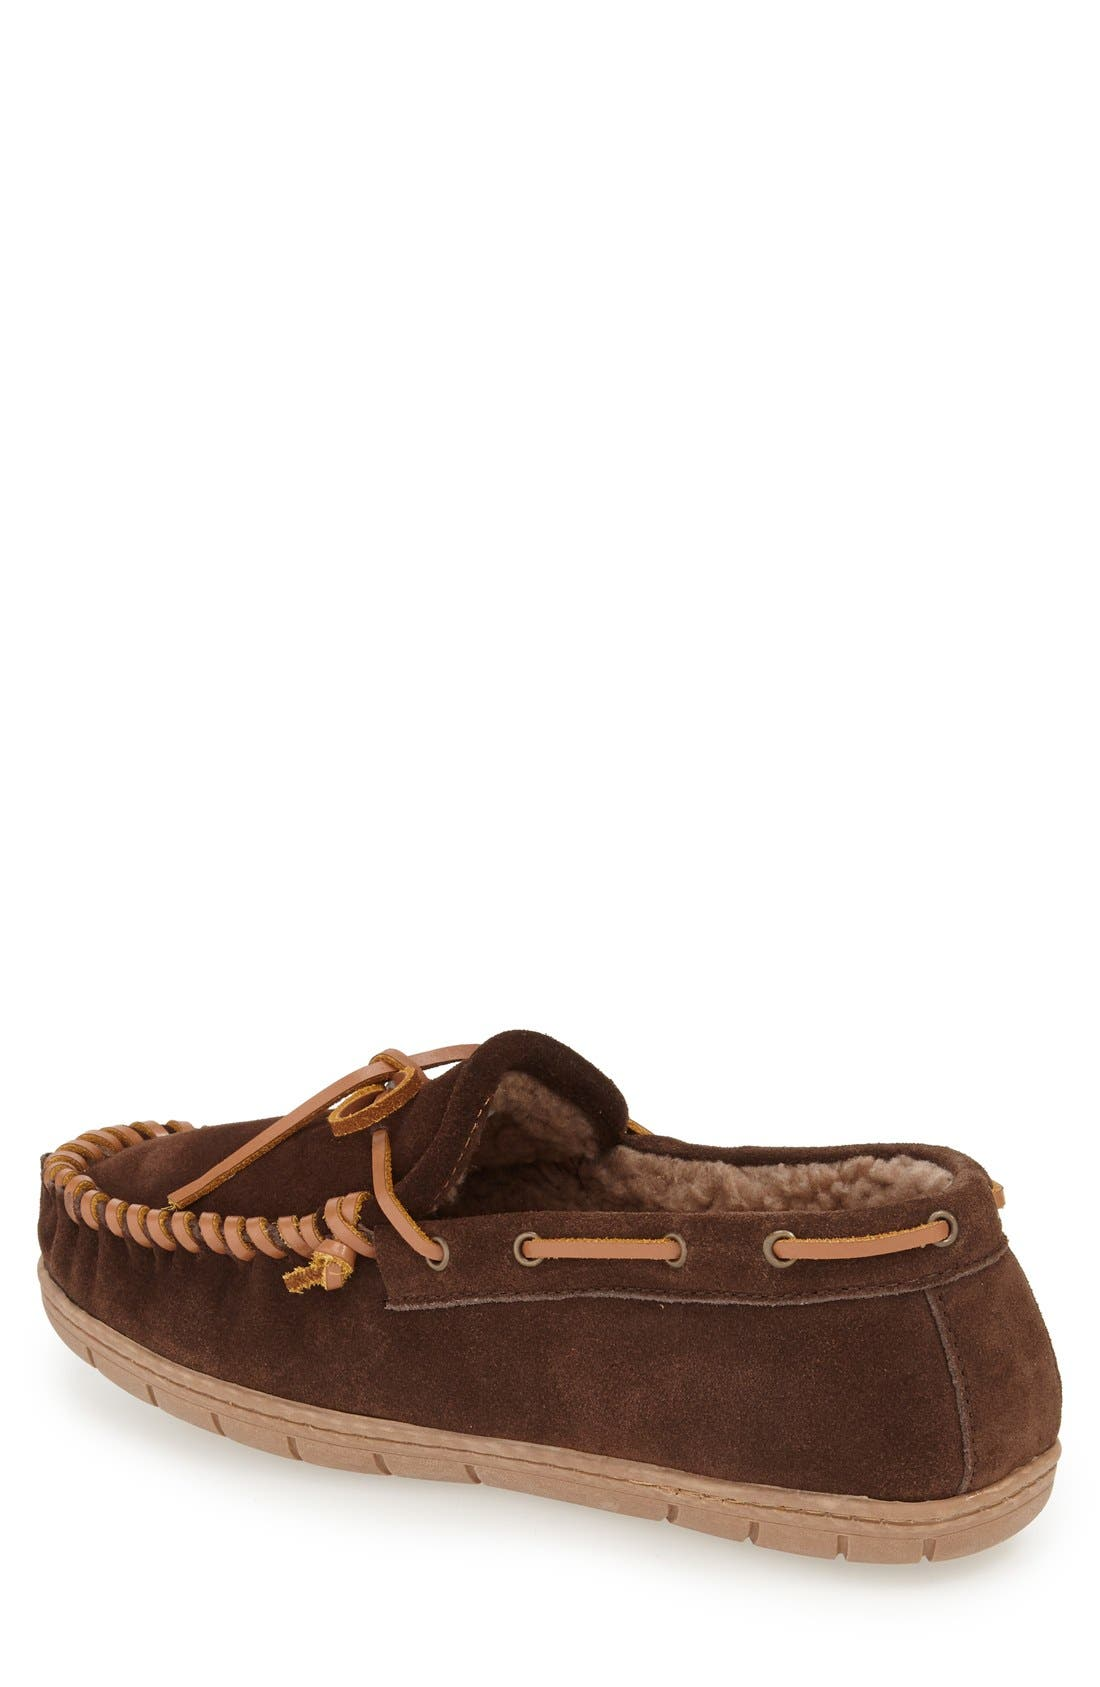 'Courier' Moccasin Slipper,                             Alternate thumbnail 3, color,                             203